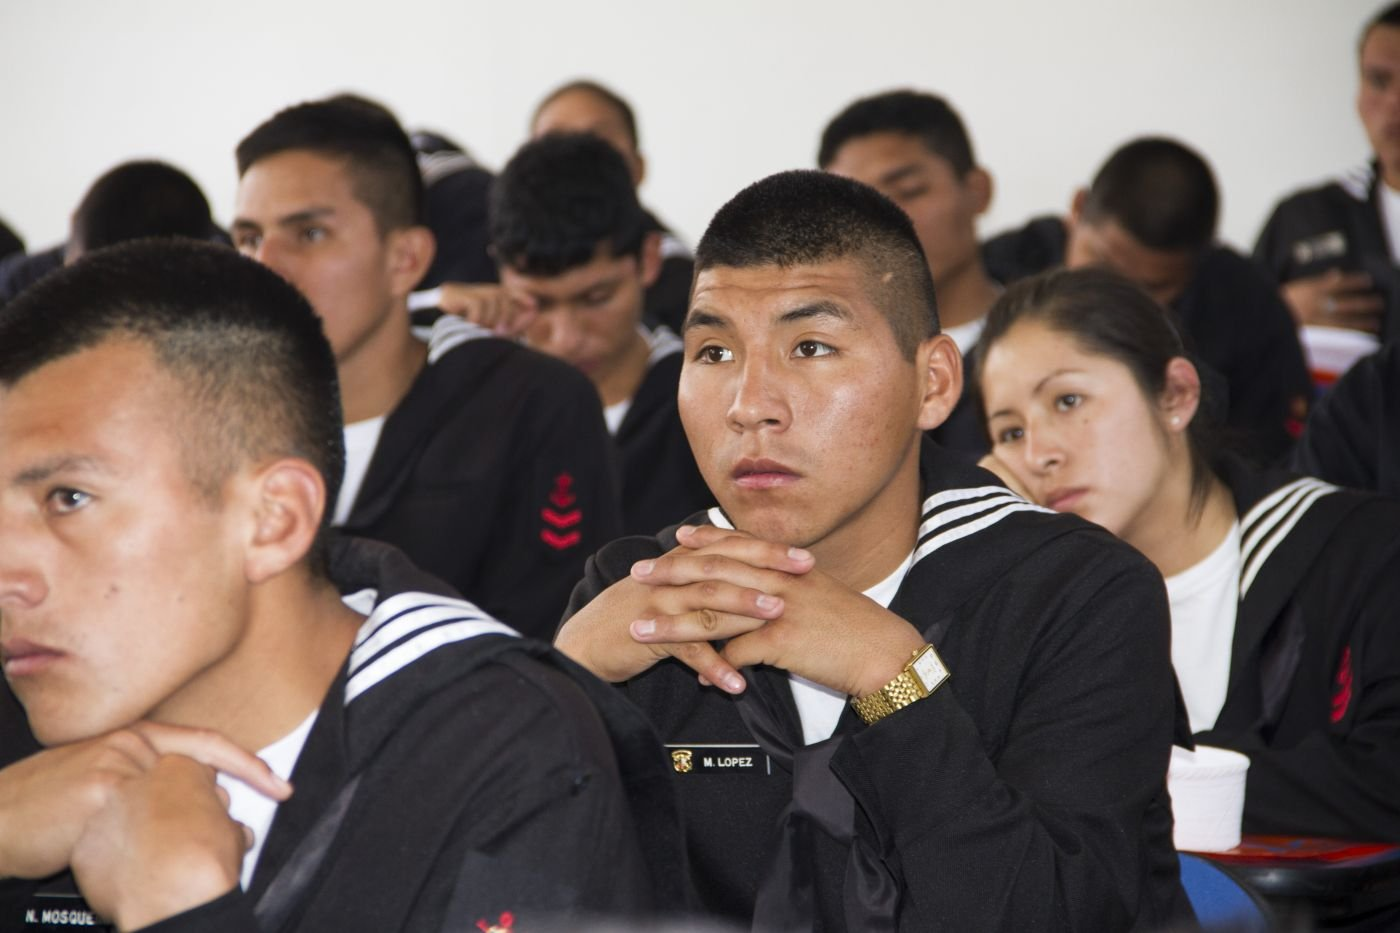 Scholarships Help Young Former Military Peruvians Further Their Education